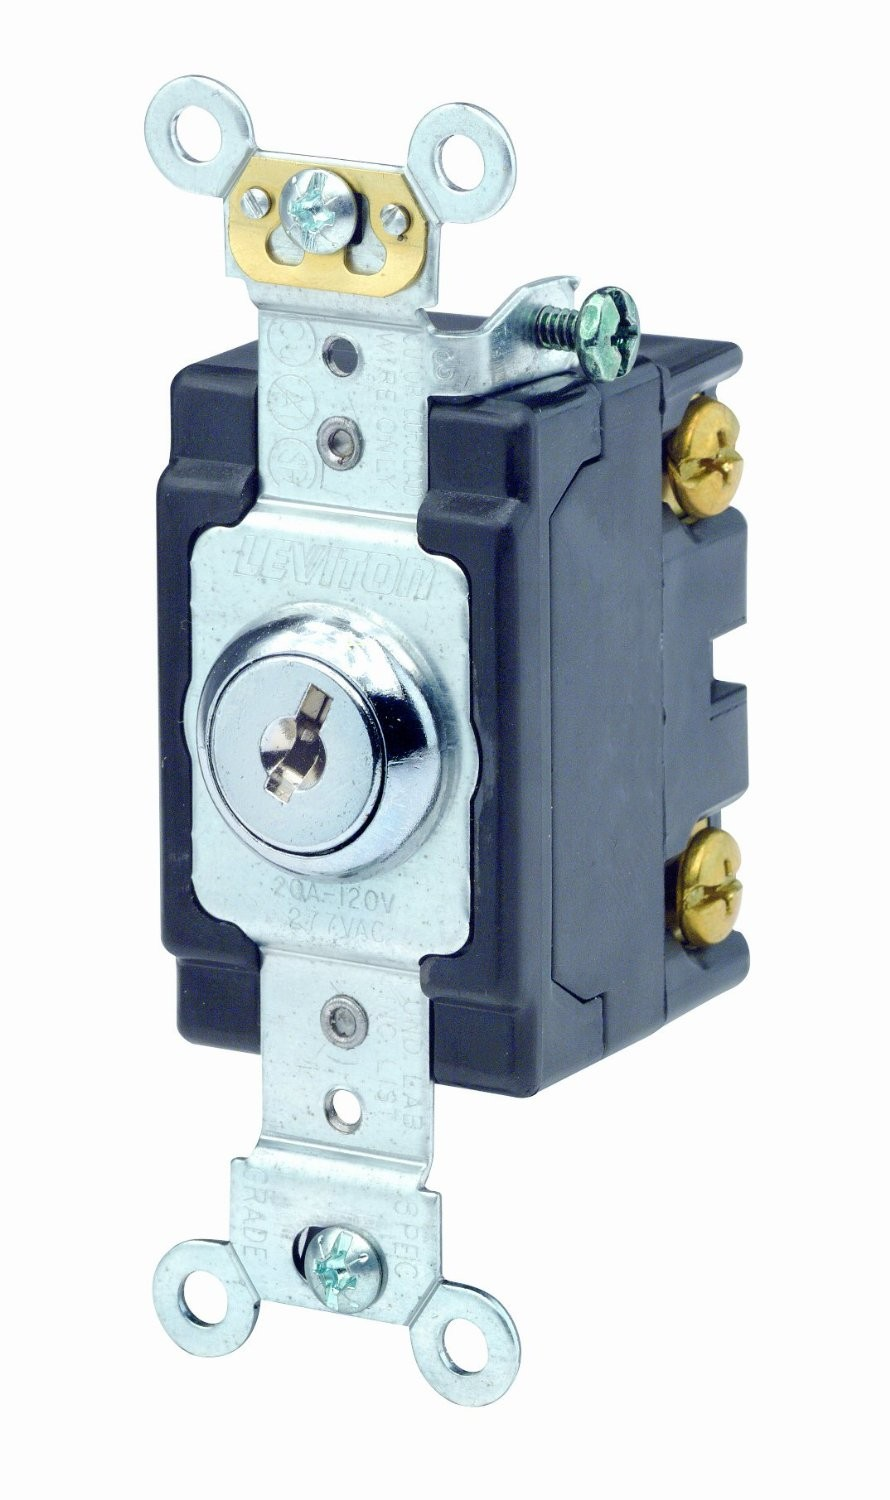 Leviton 1221 2kl Single Pole Key Lock Power Switch 20a 120 277v Cooper Wiring Quiet Toggle Lighted 15 A V Ivory Nickel Plated